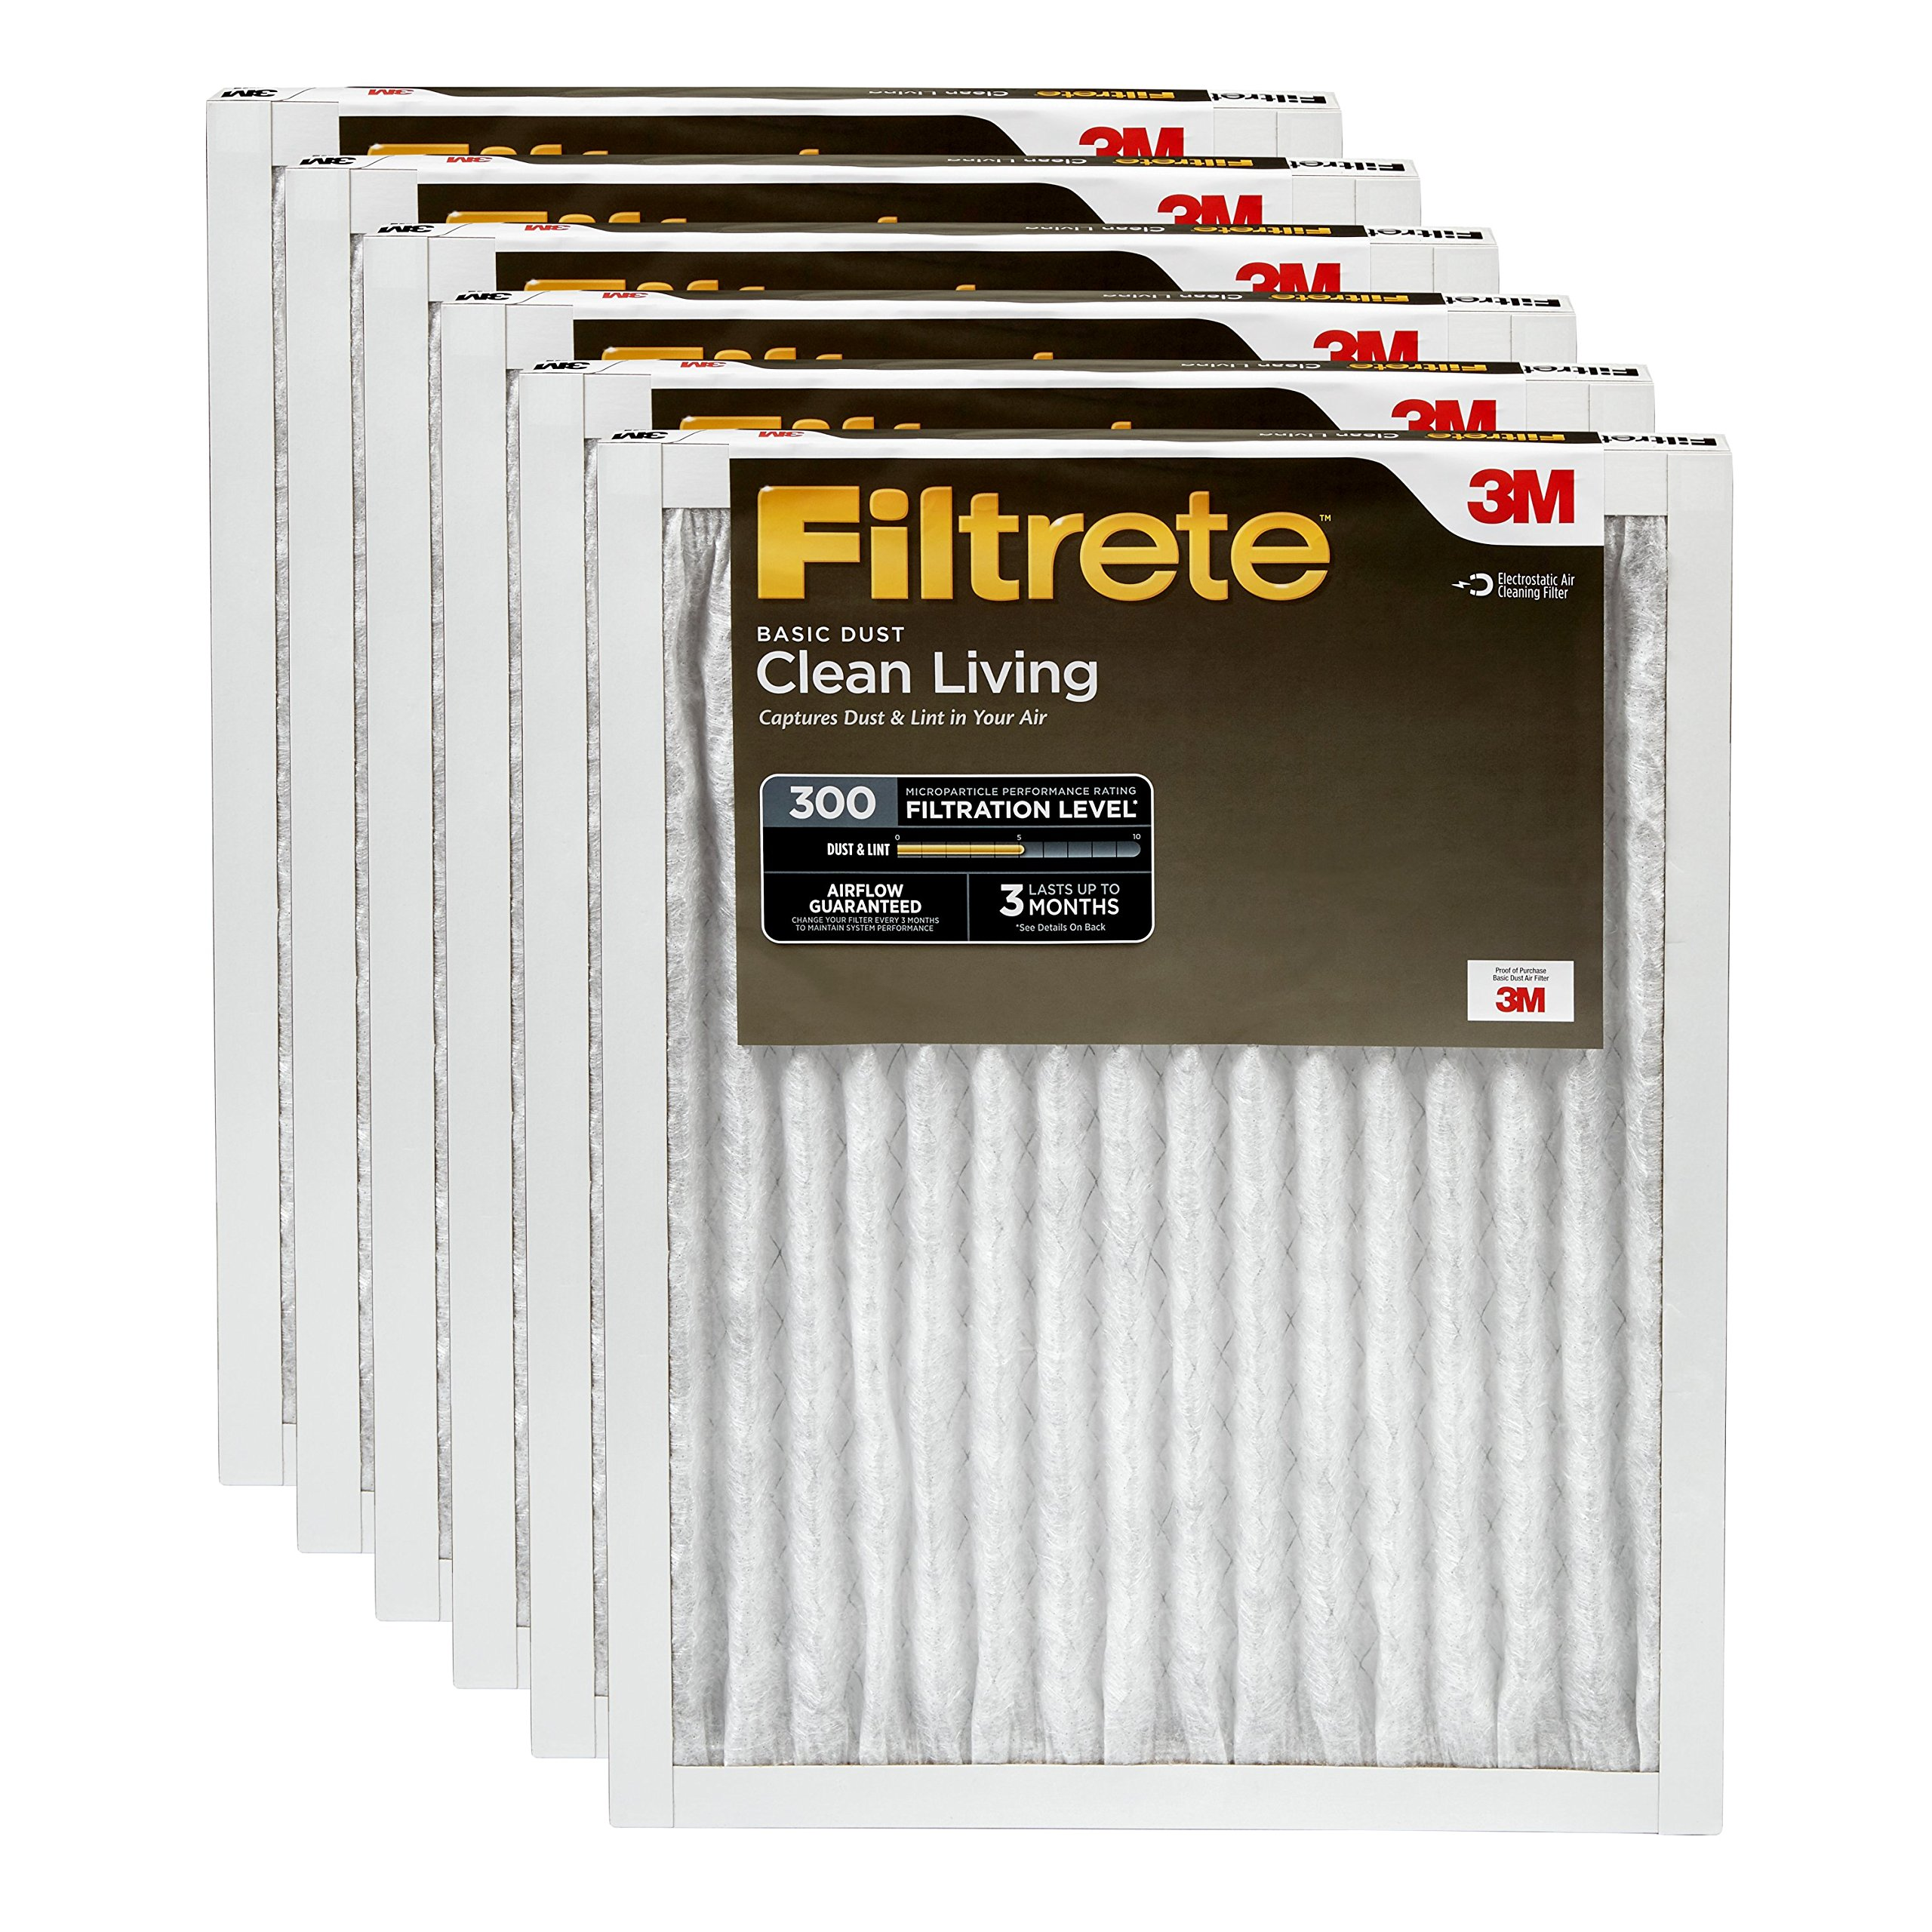 Filtrete 16x25x1, AC Furnace Air Filter, MPR 300, Clean Living Basic Dust, 6-Pack by Filtrete